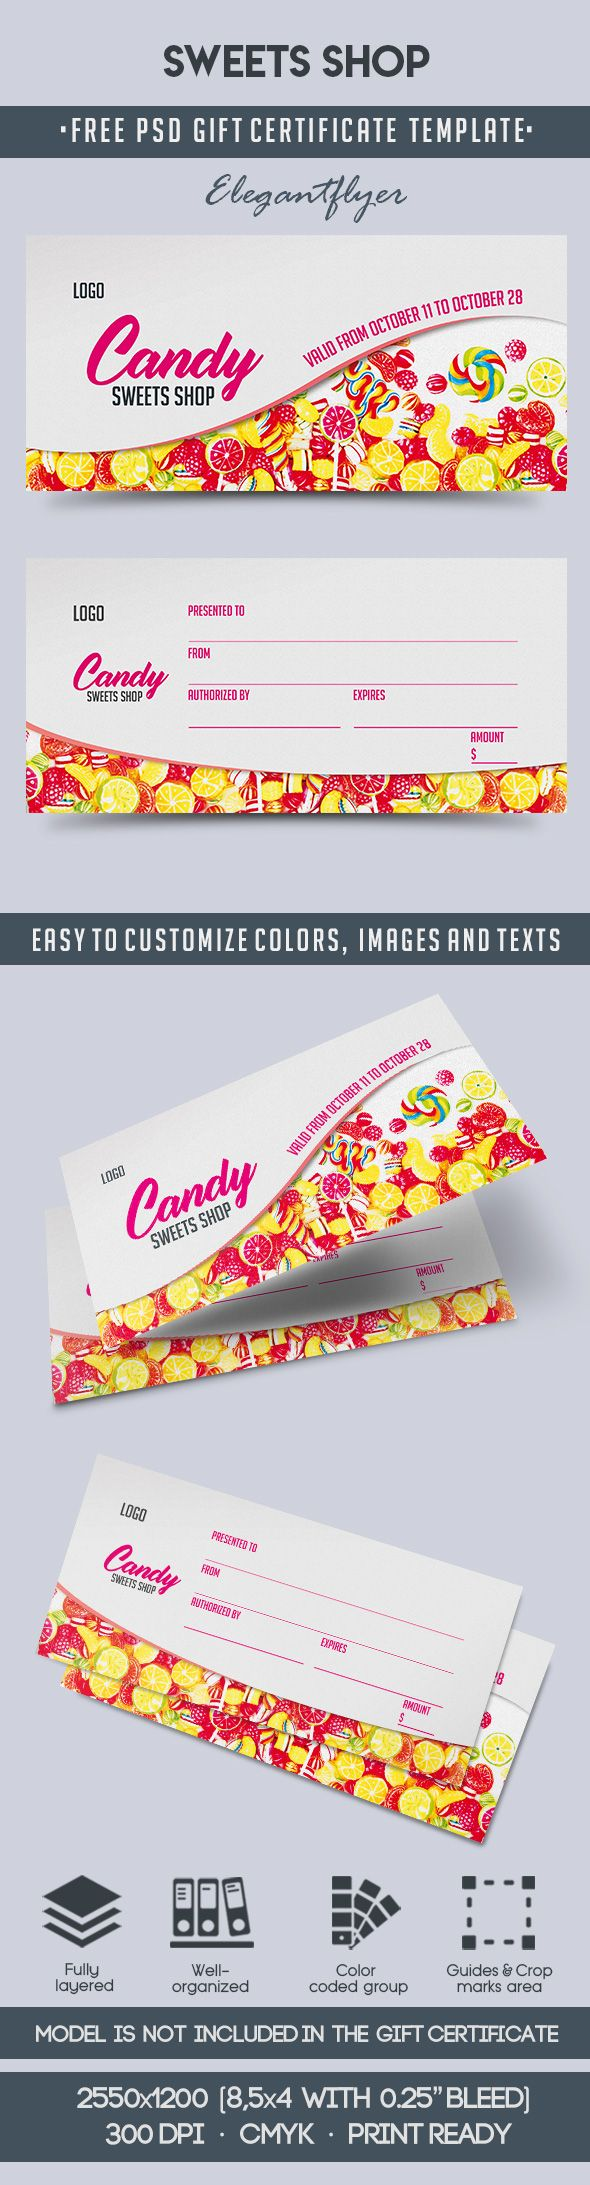 Sweets Shop – Free Gift Certificate PSD Template